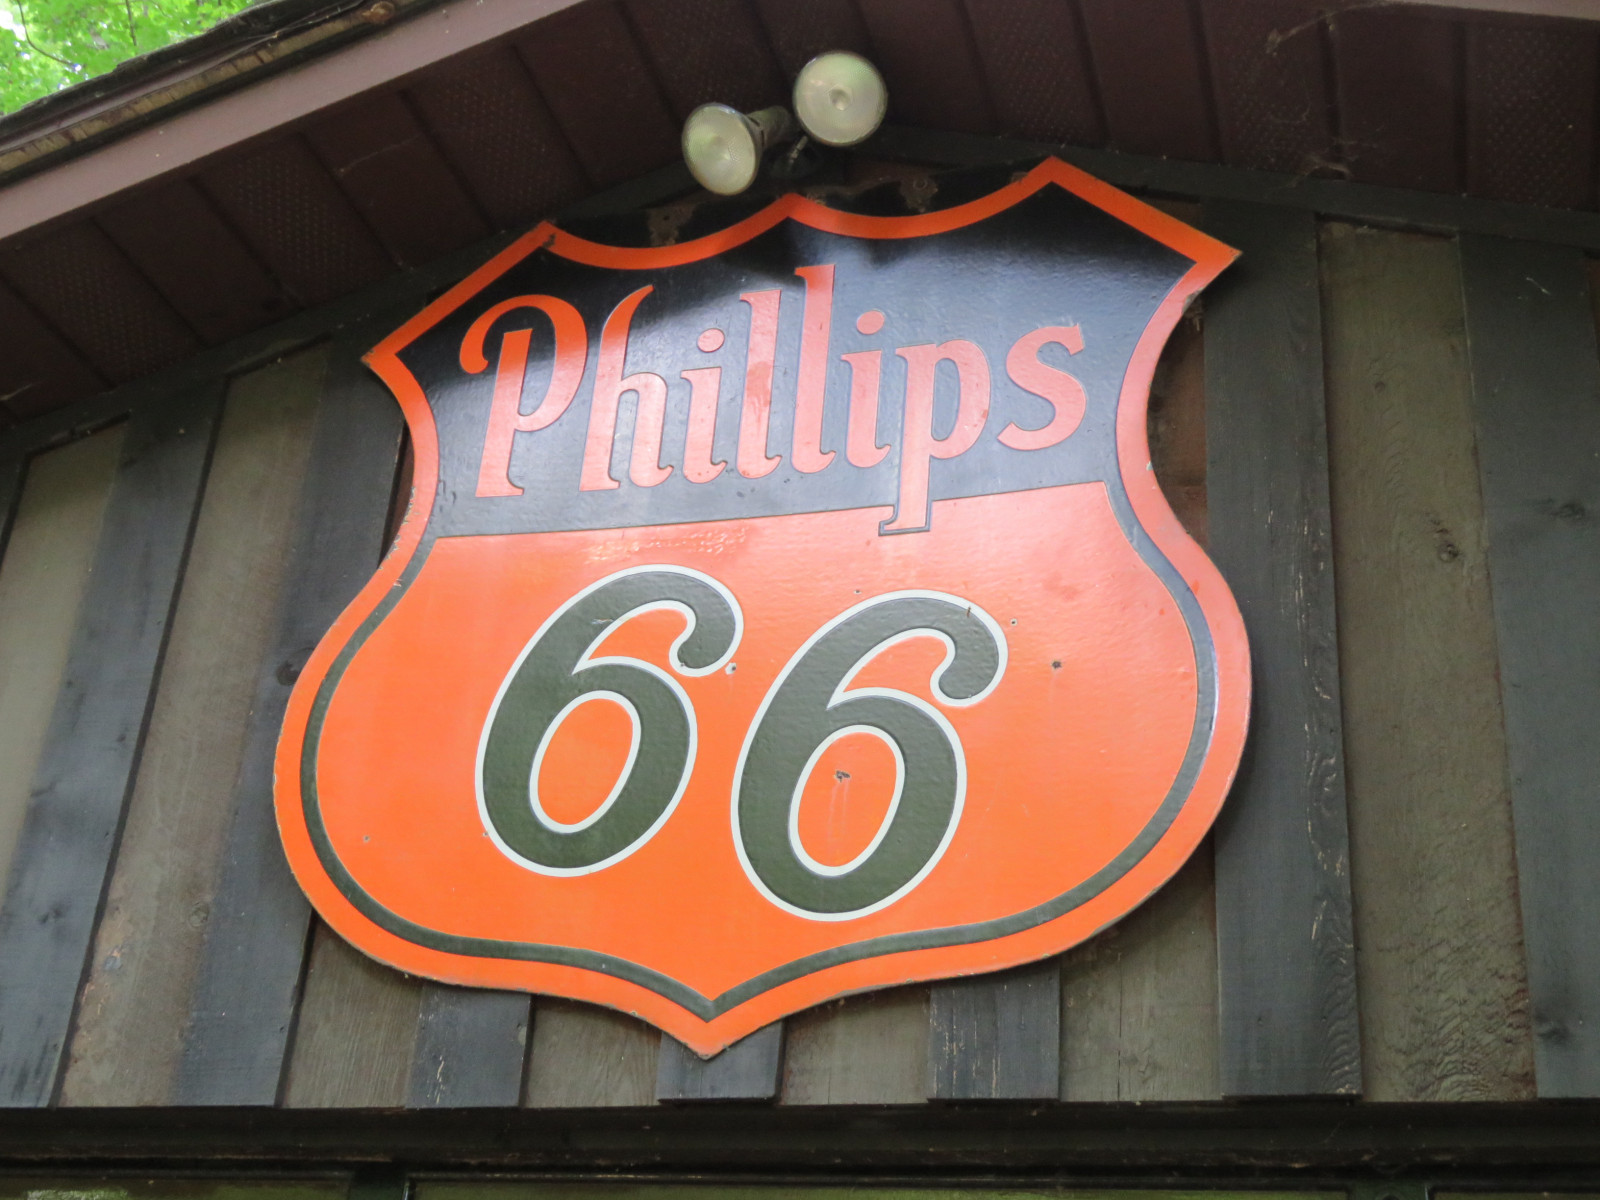 Phillips 66 Porcelain Sign - Image 1